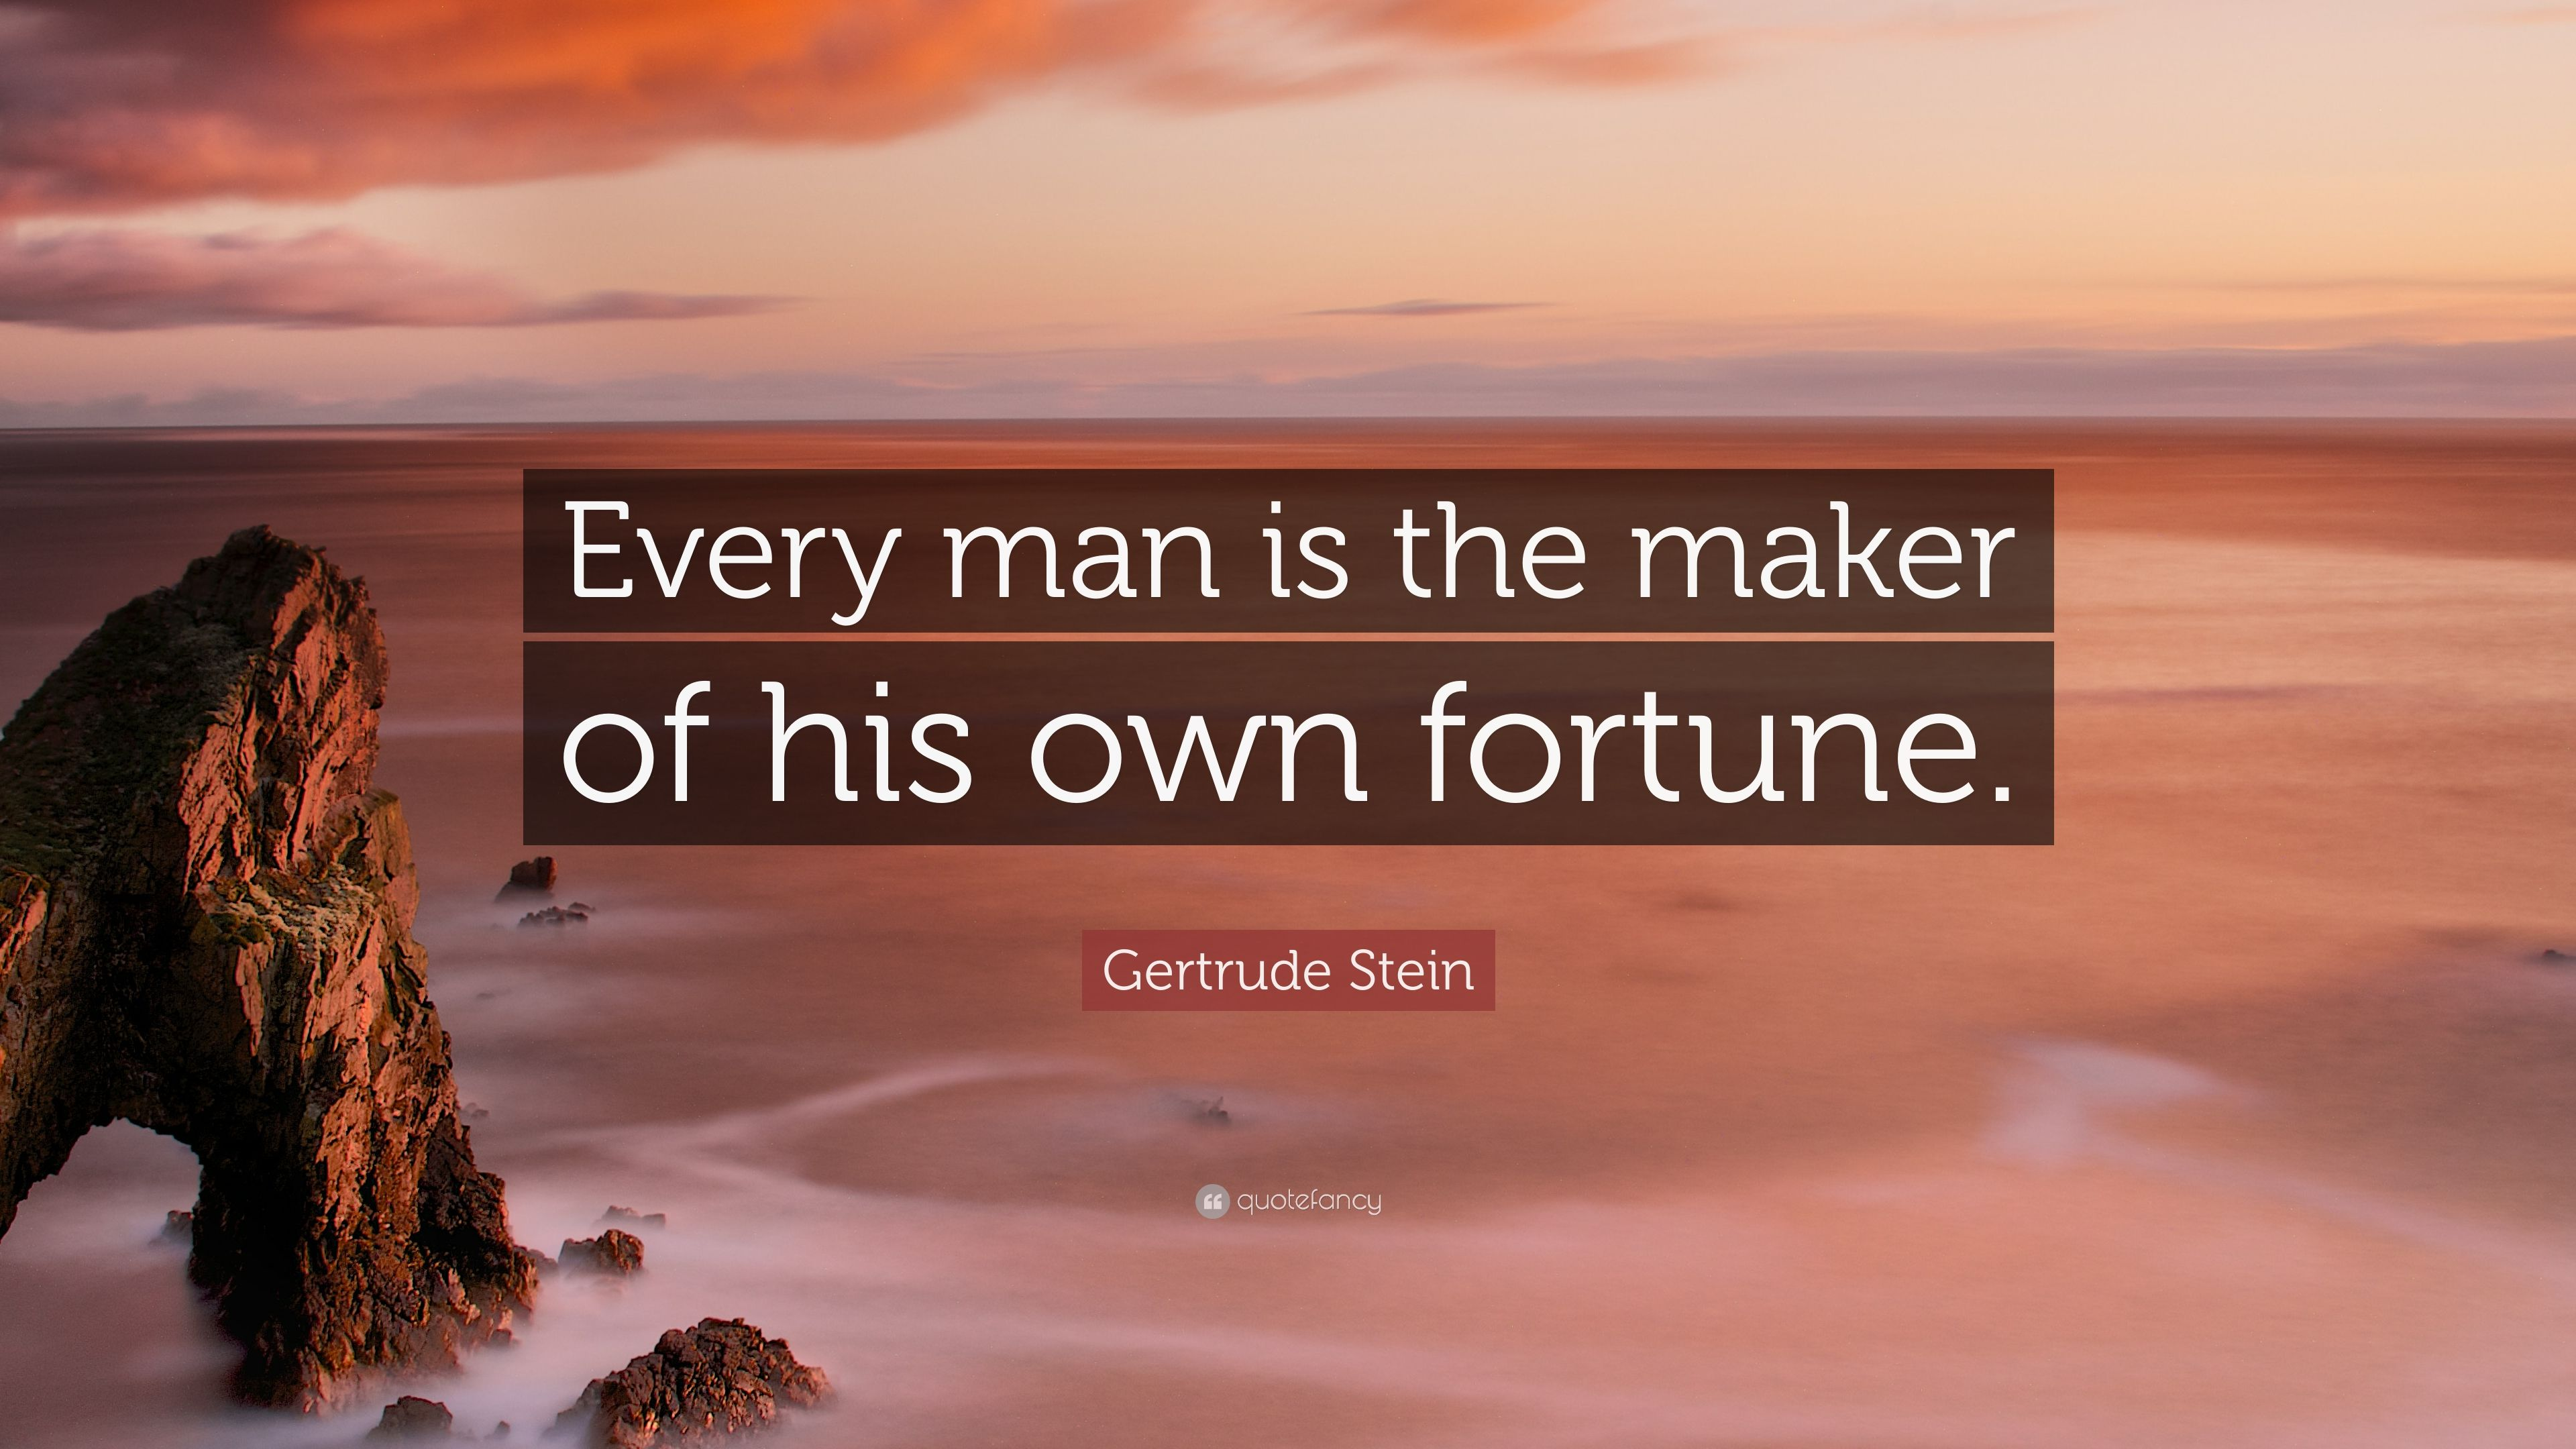 Image of: Behappy Gertrude Stein Quote every Man Is The Maker Of His Own Fortune Quotefancy Gertrude Stein Quote every Man Is The Maker Of His Own Fortune